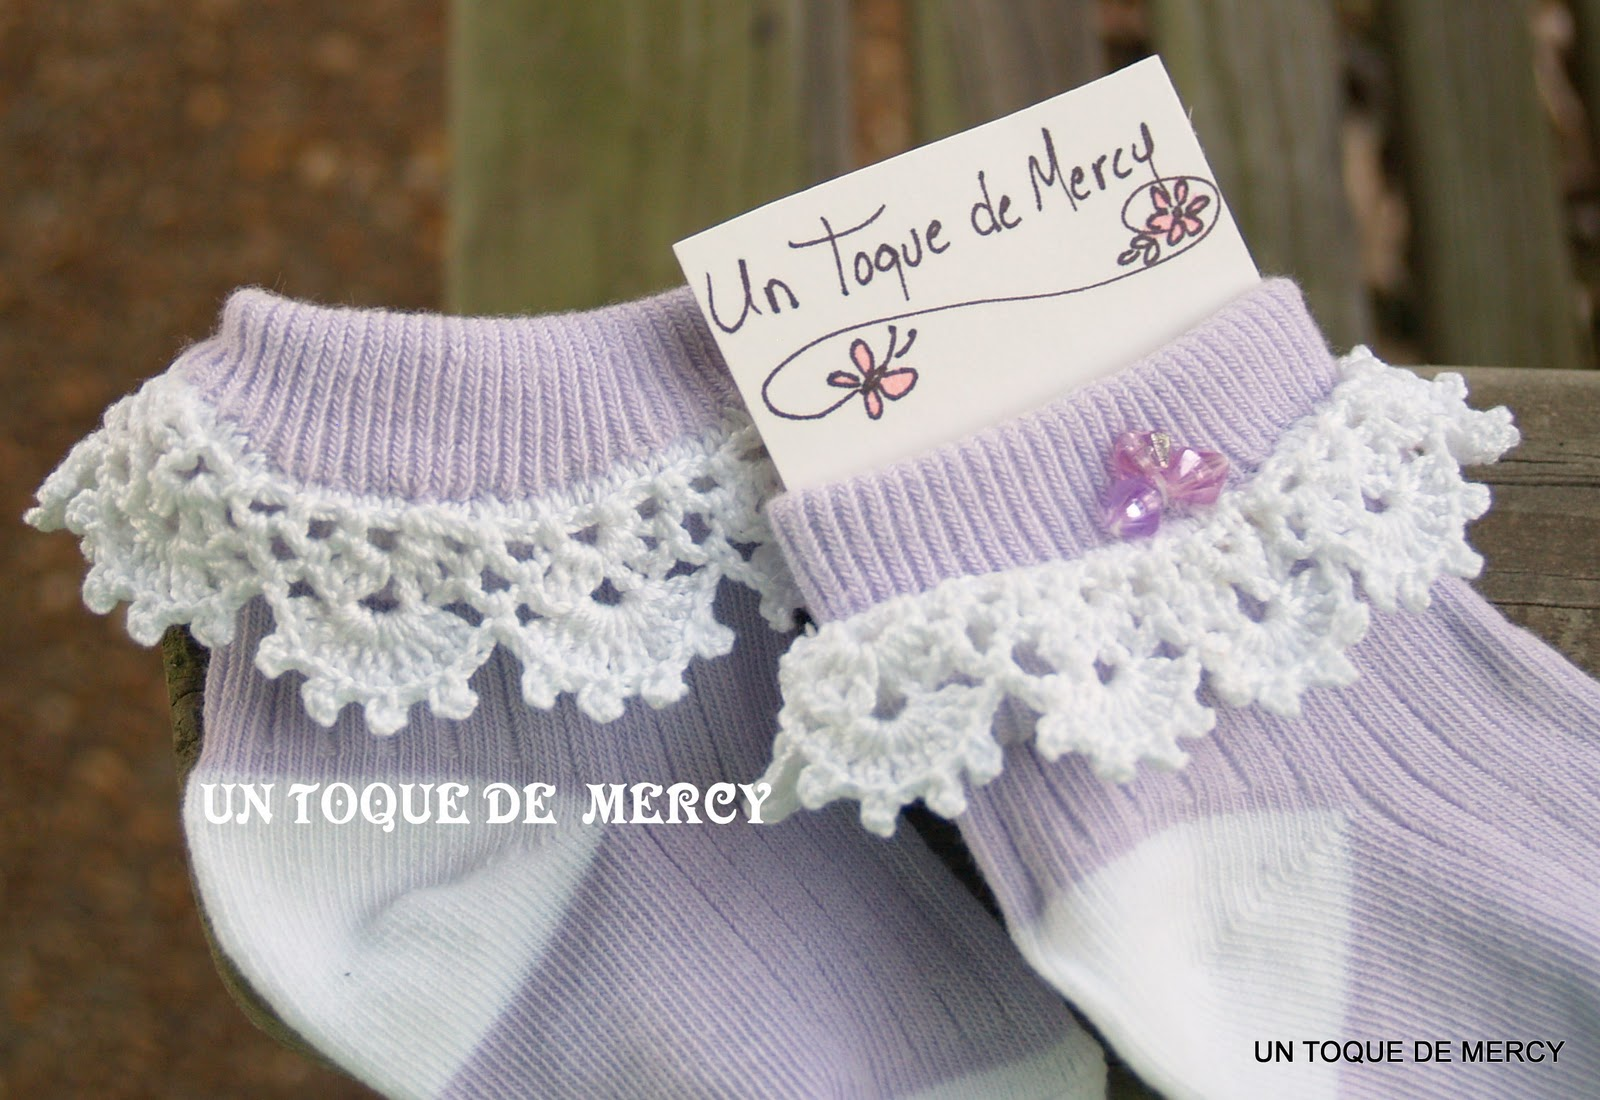 Un toque de mercy calcetines con decoracion de crochet for Decoracion del hogar con crochet